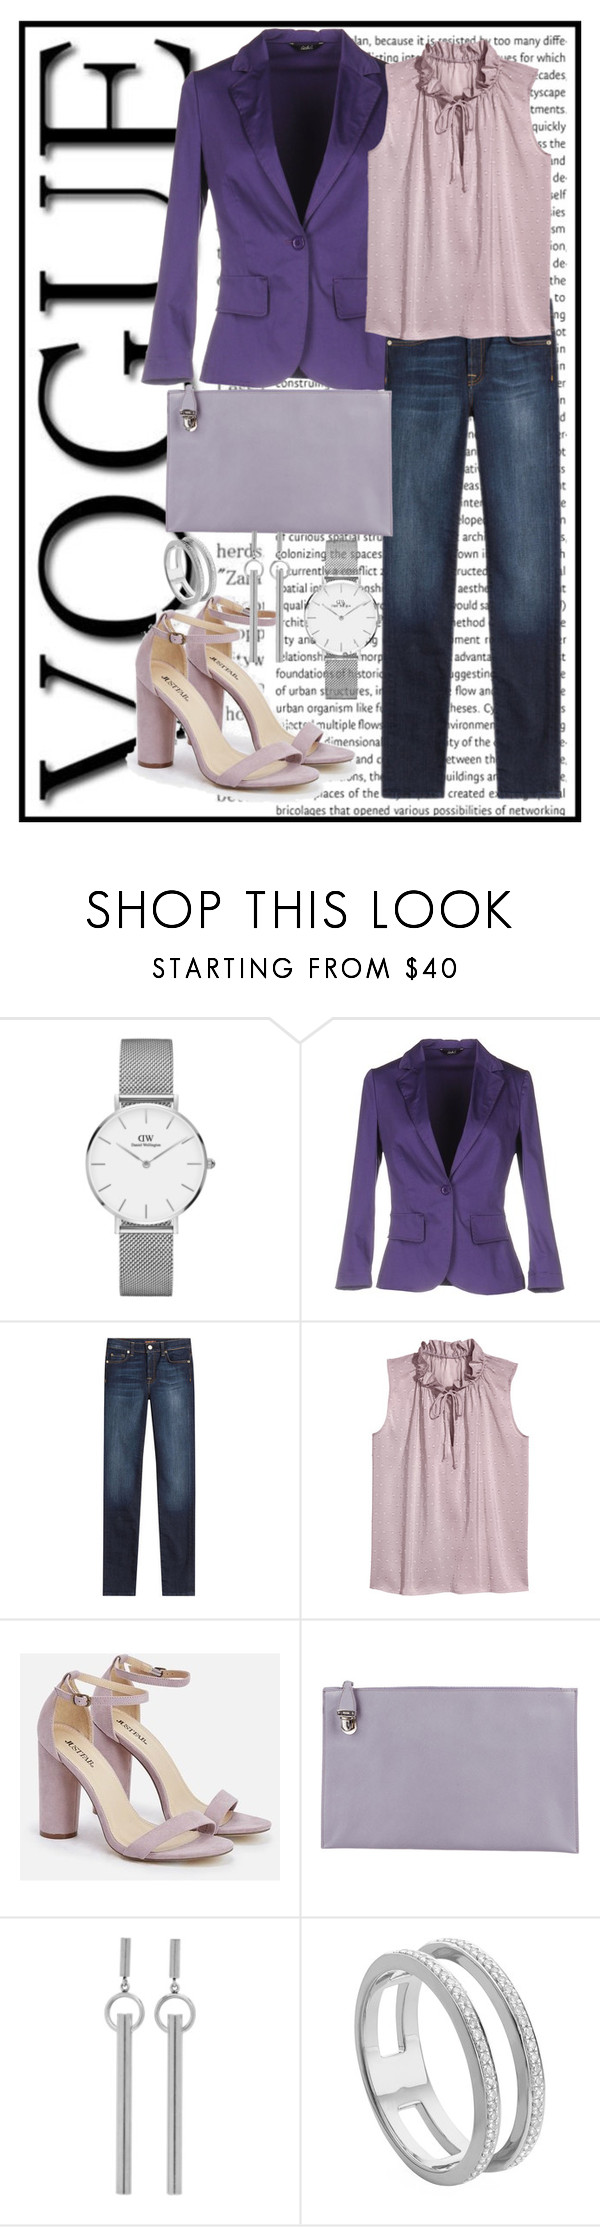 """""""cute in purple"""" by francymayoli ❤ liked on Polyvore featuring Daniel Wellington, Carla G., 7 For All Mankind, JustFab, Prada, Isabel Marant and Monica Vinader"""